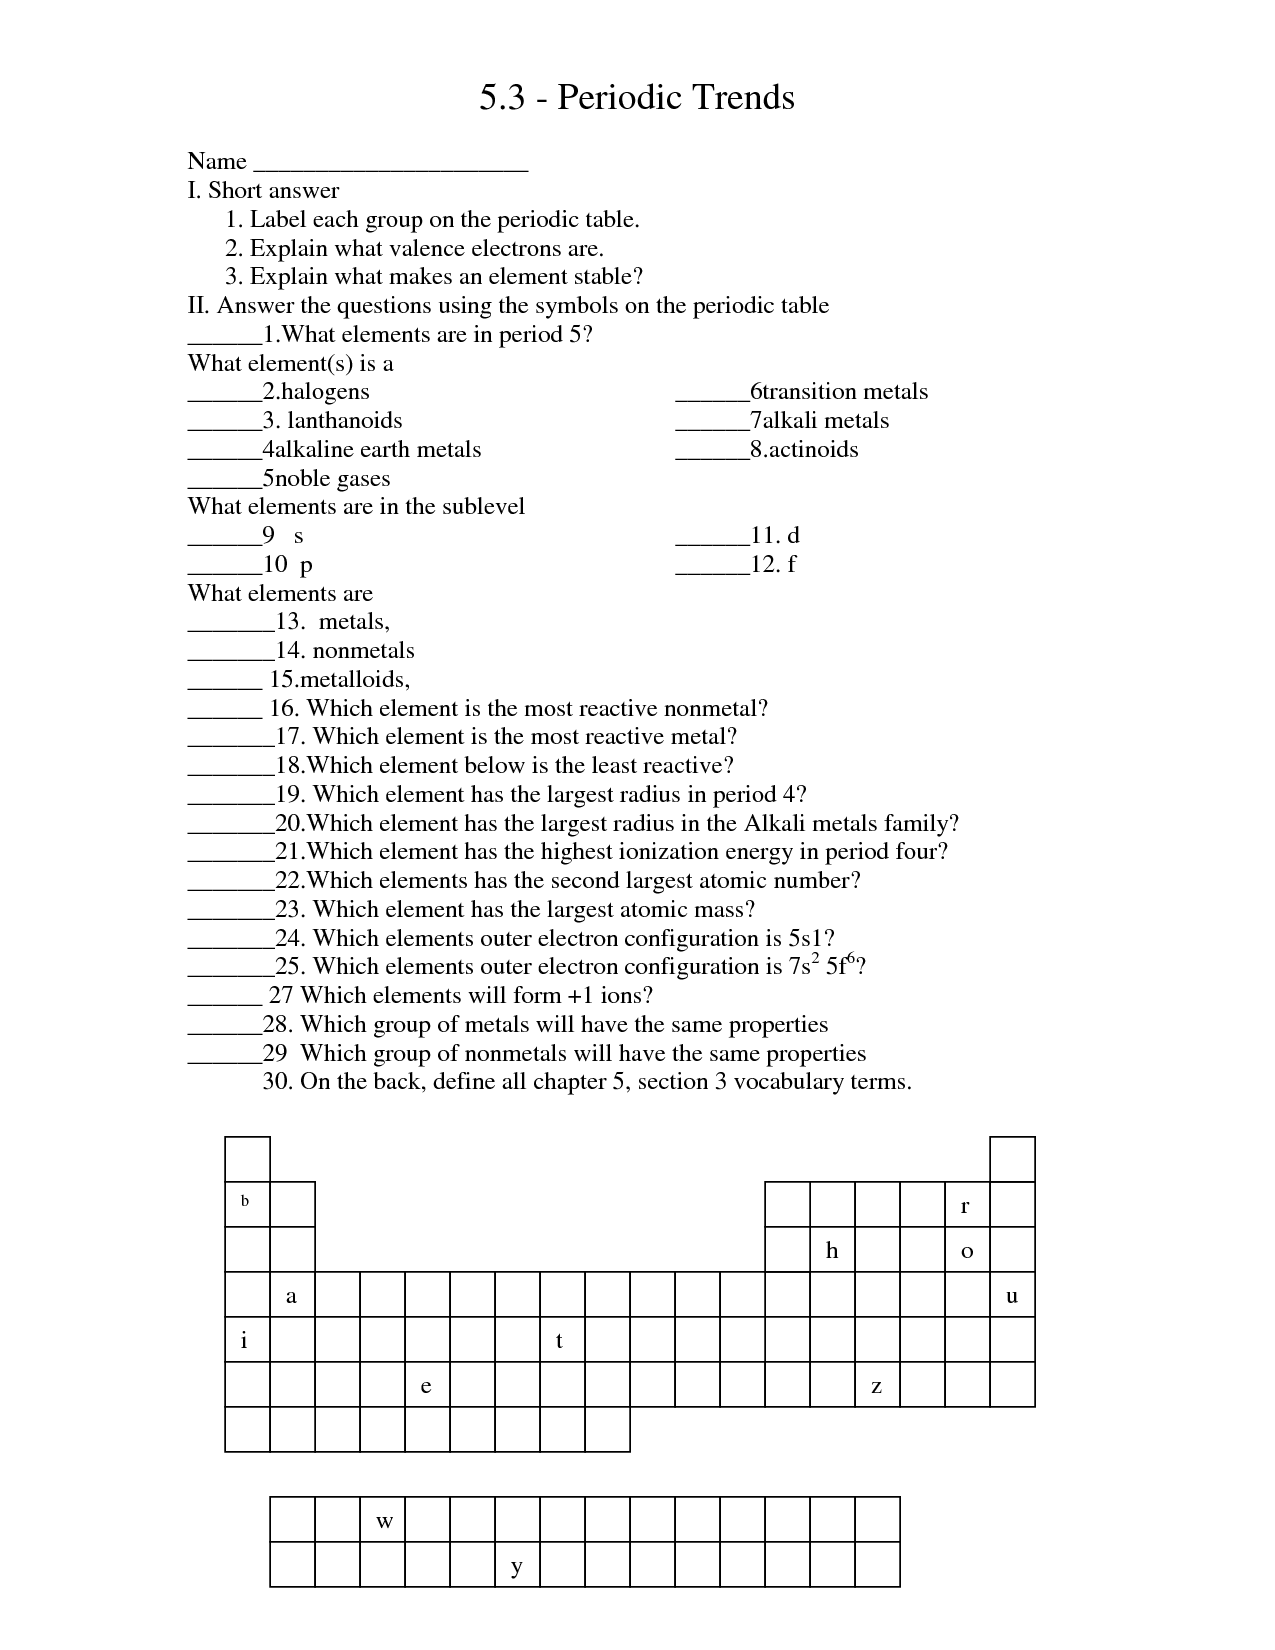 Periodic Table Trends Questions Worksheet